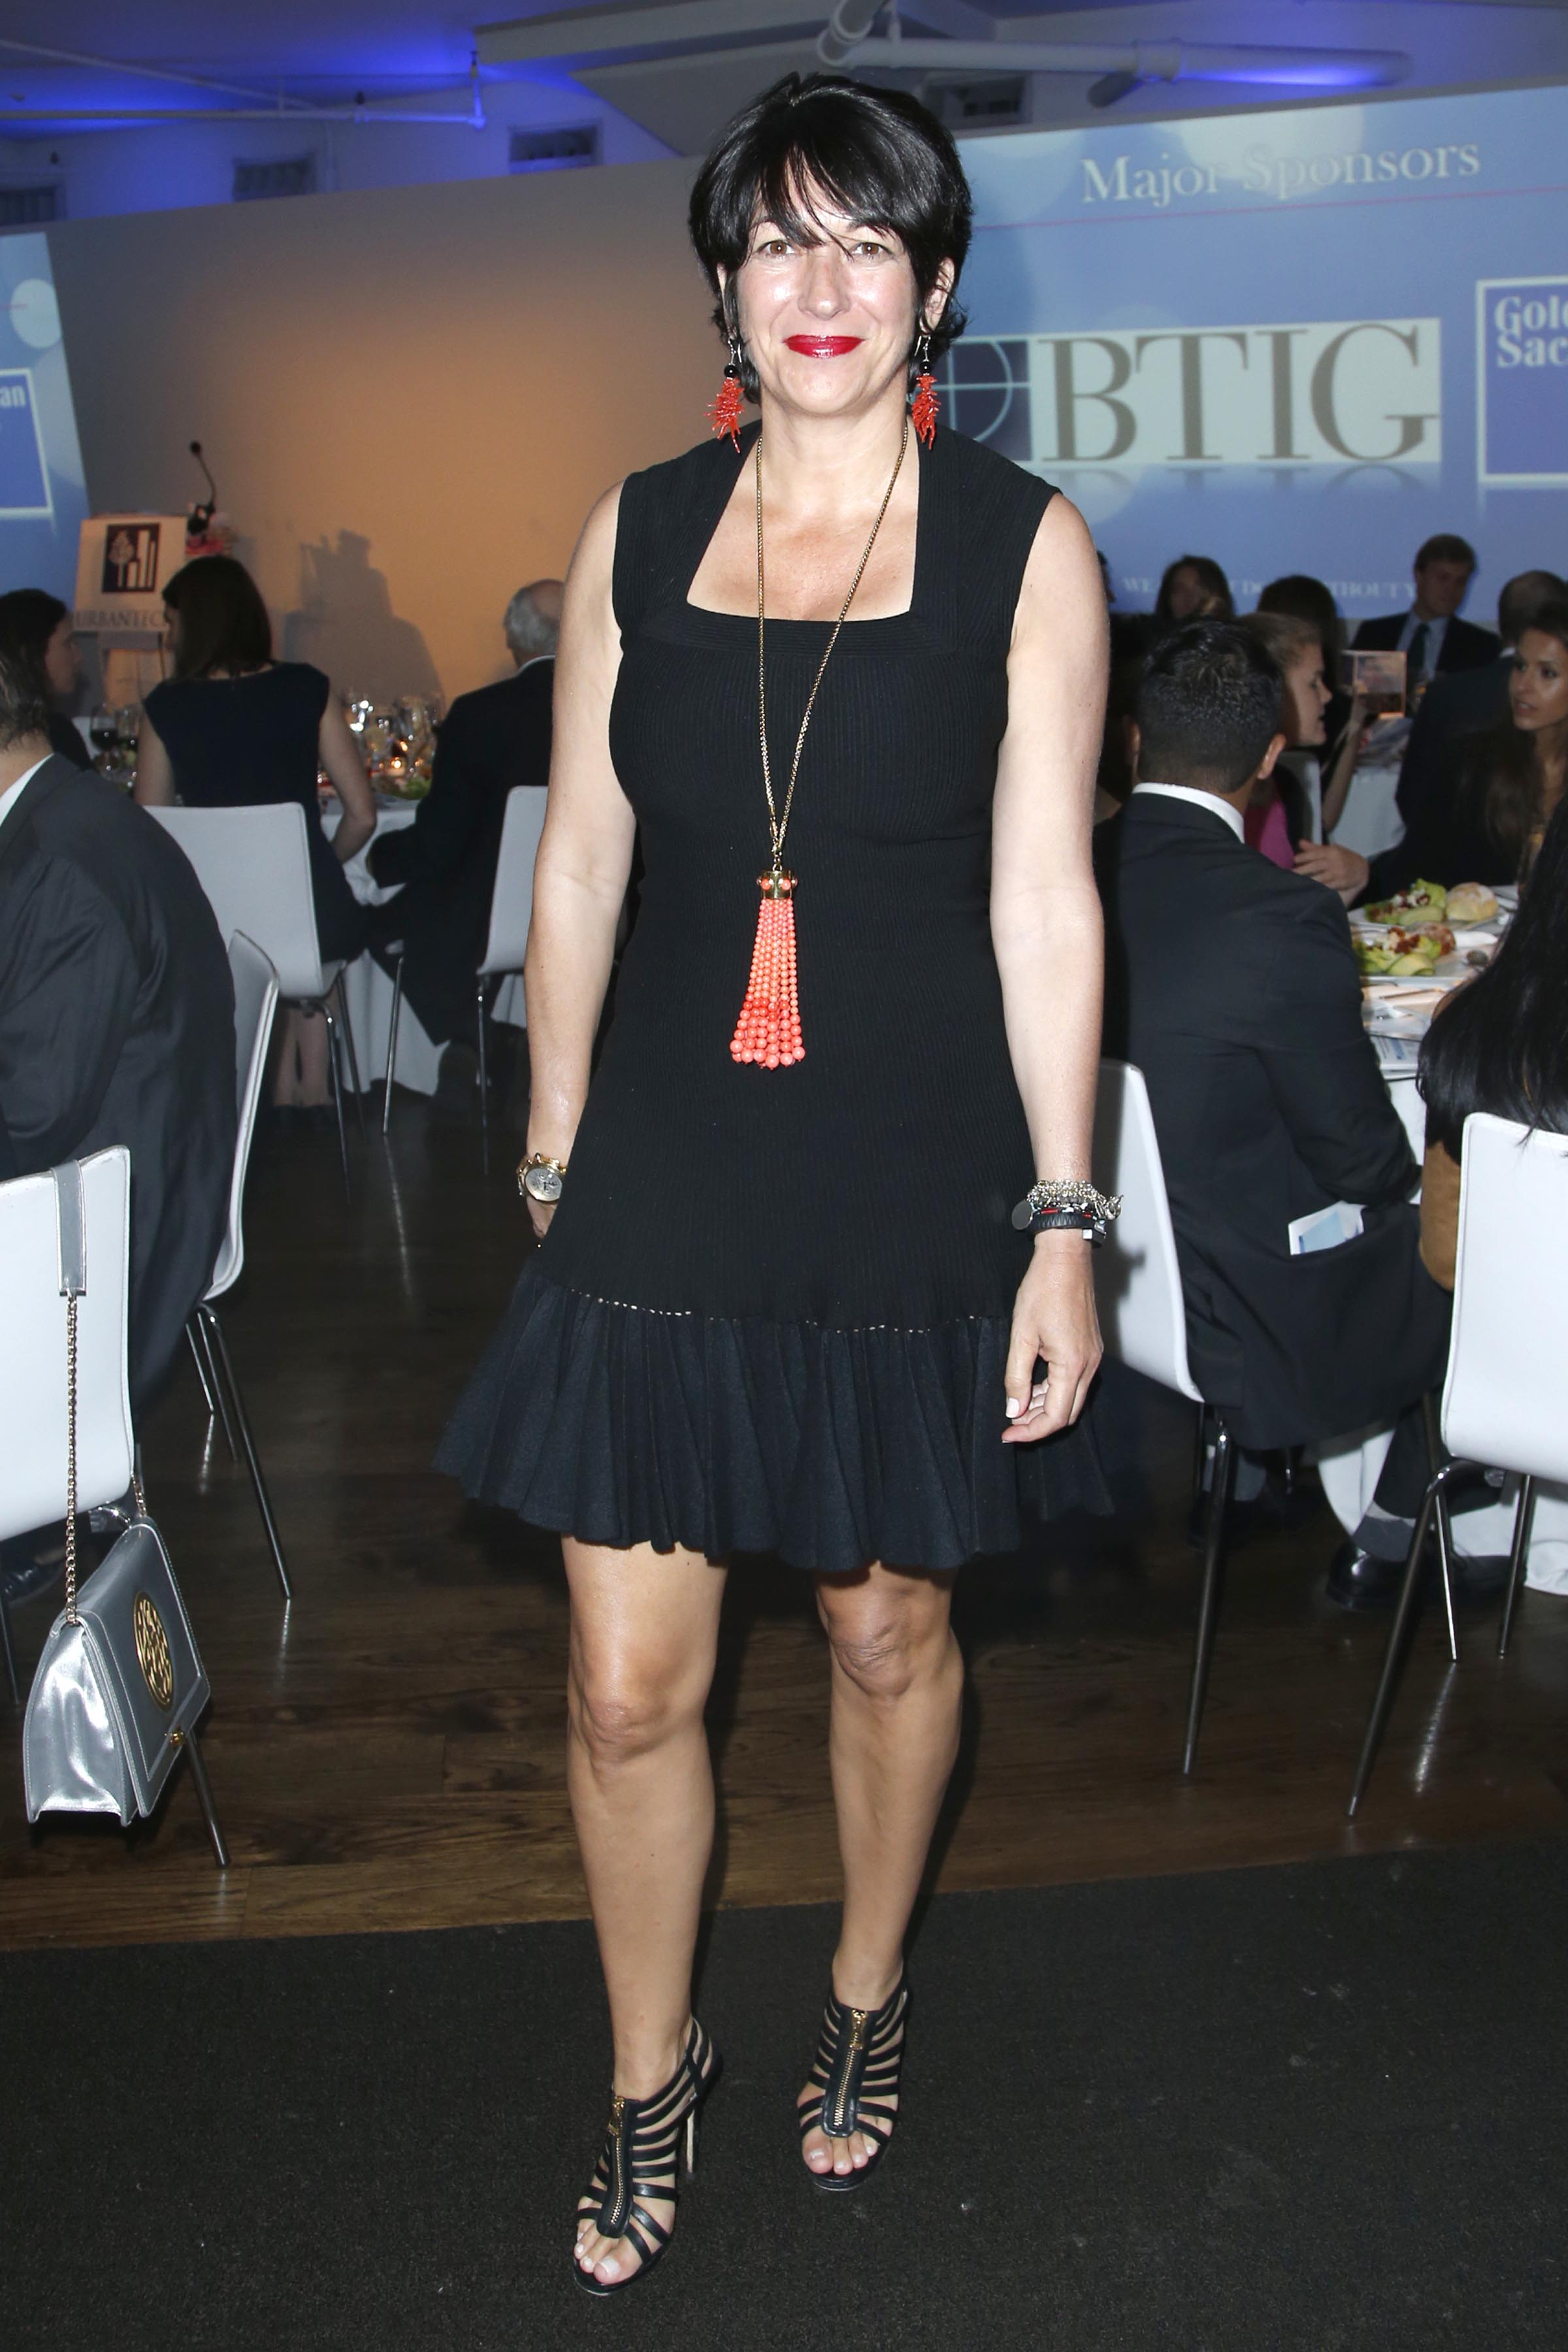 NEW YORK, NY - JUNE 11: Ghislaine Maxwell attends NATIONAL URBAN TECH CENTER 2014 Gala at Three Sixty on June 11, 2014 in New York City. (Photo by Jimi Celeste/Patrick McMullan via Getty Images)